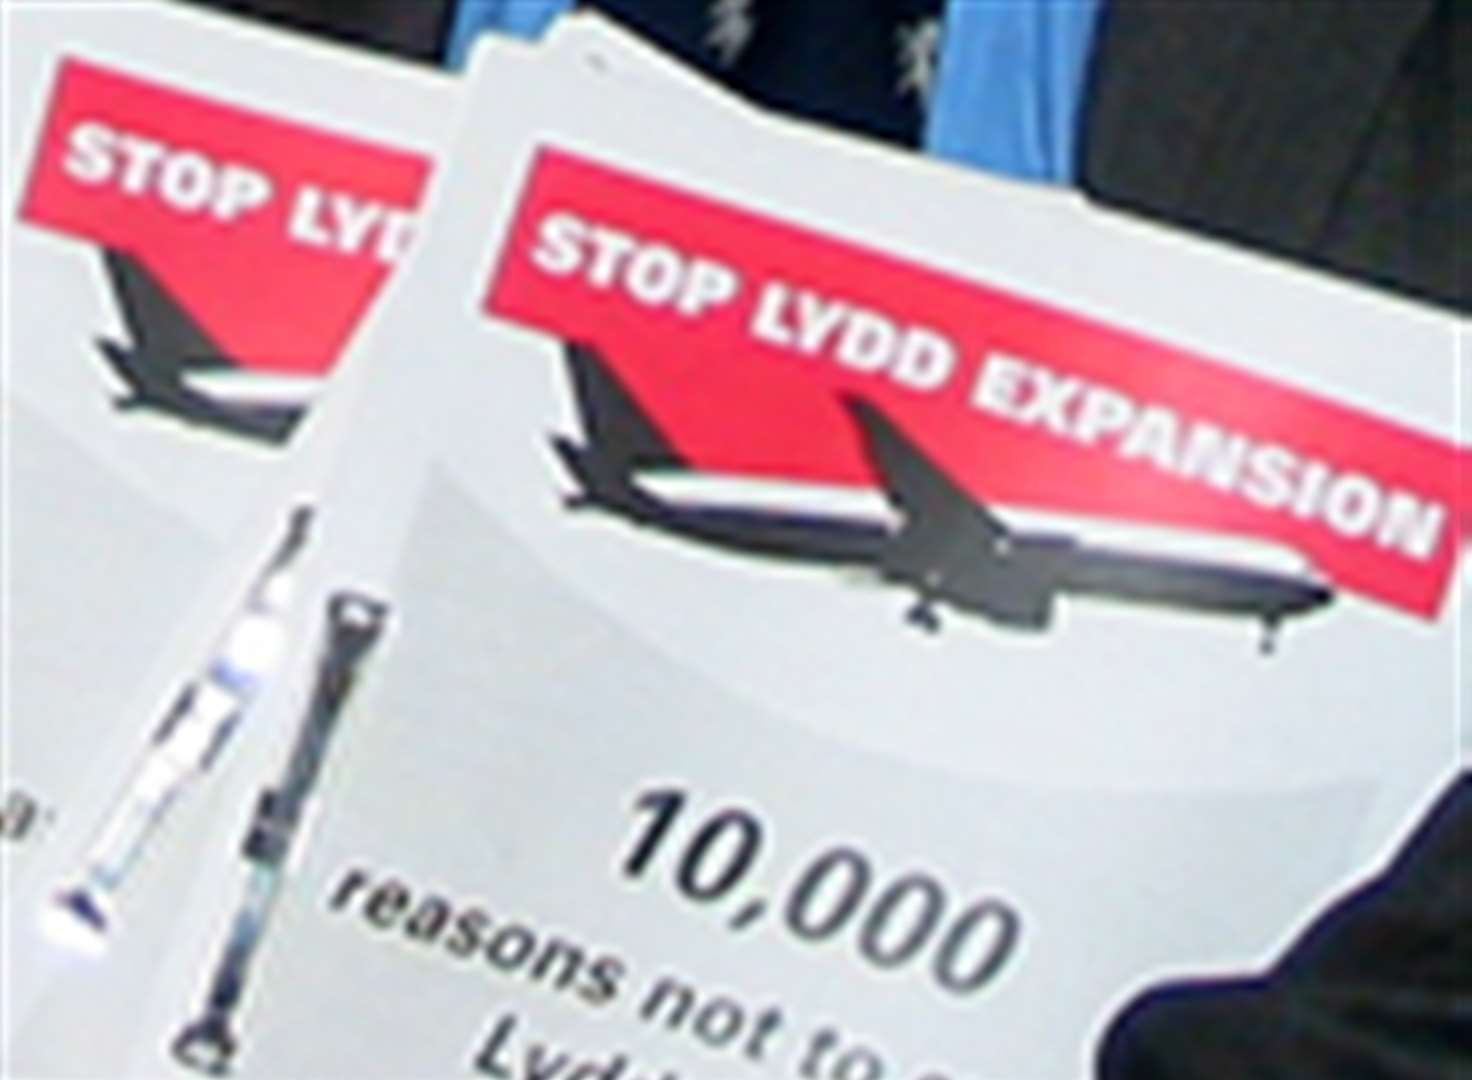 Are airport expansion plans 'irresponsible'? Join the debate